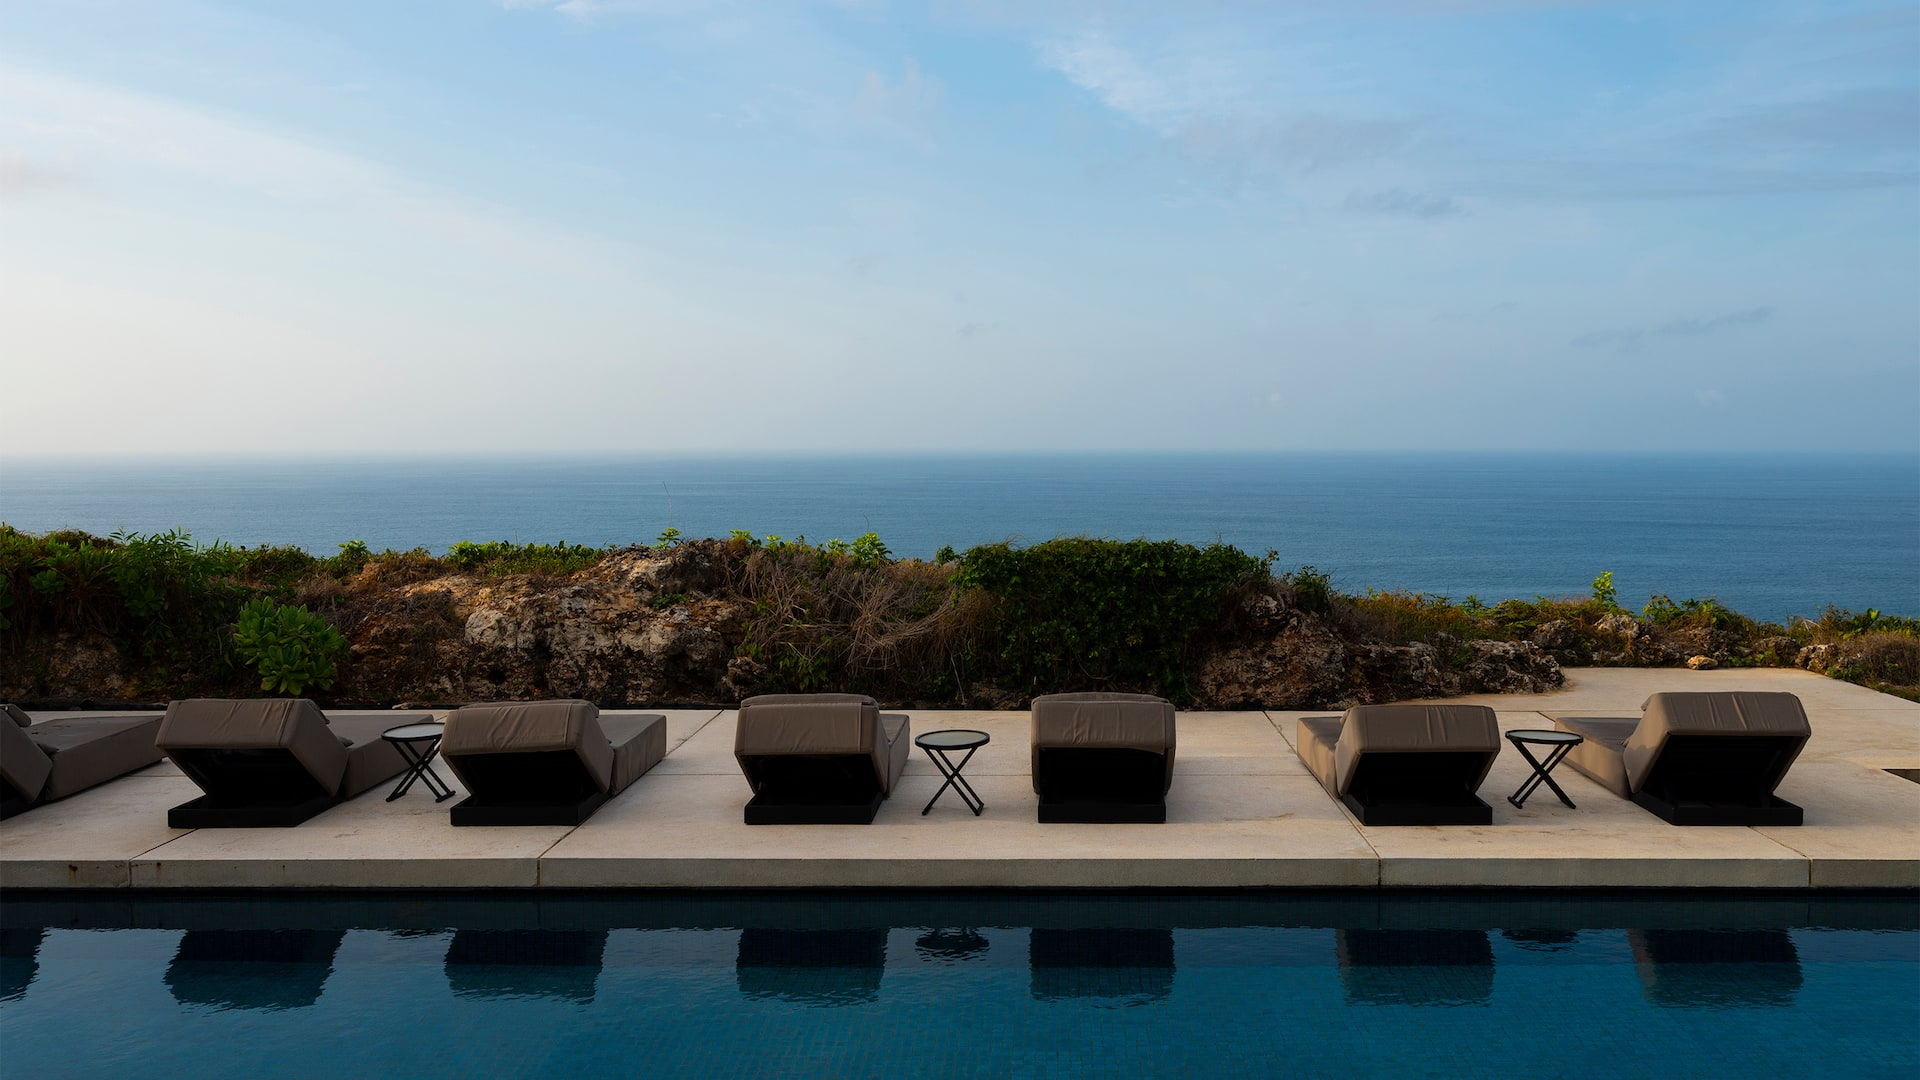 Alila-Villas-Uluwatu-P058-Morning-View-Pool.16x9-V1.jpg